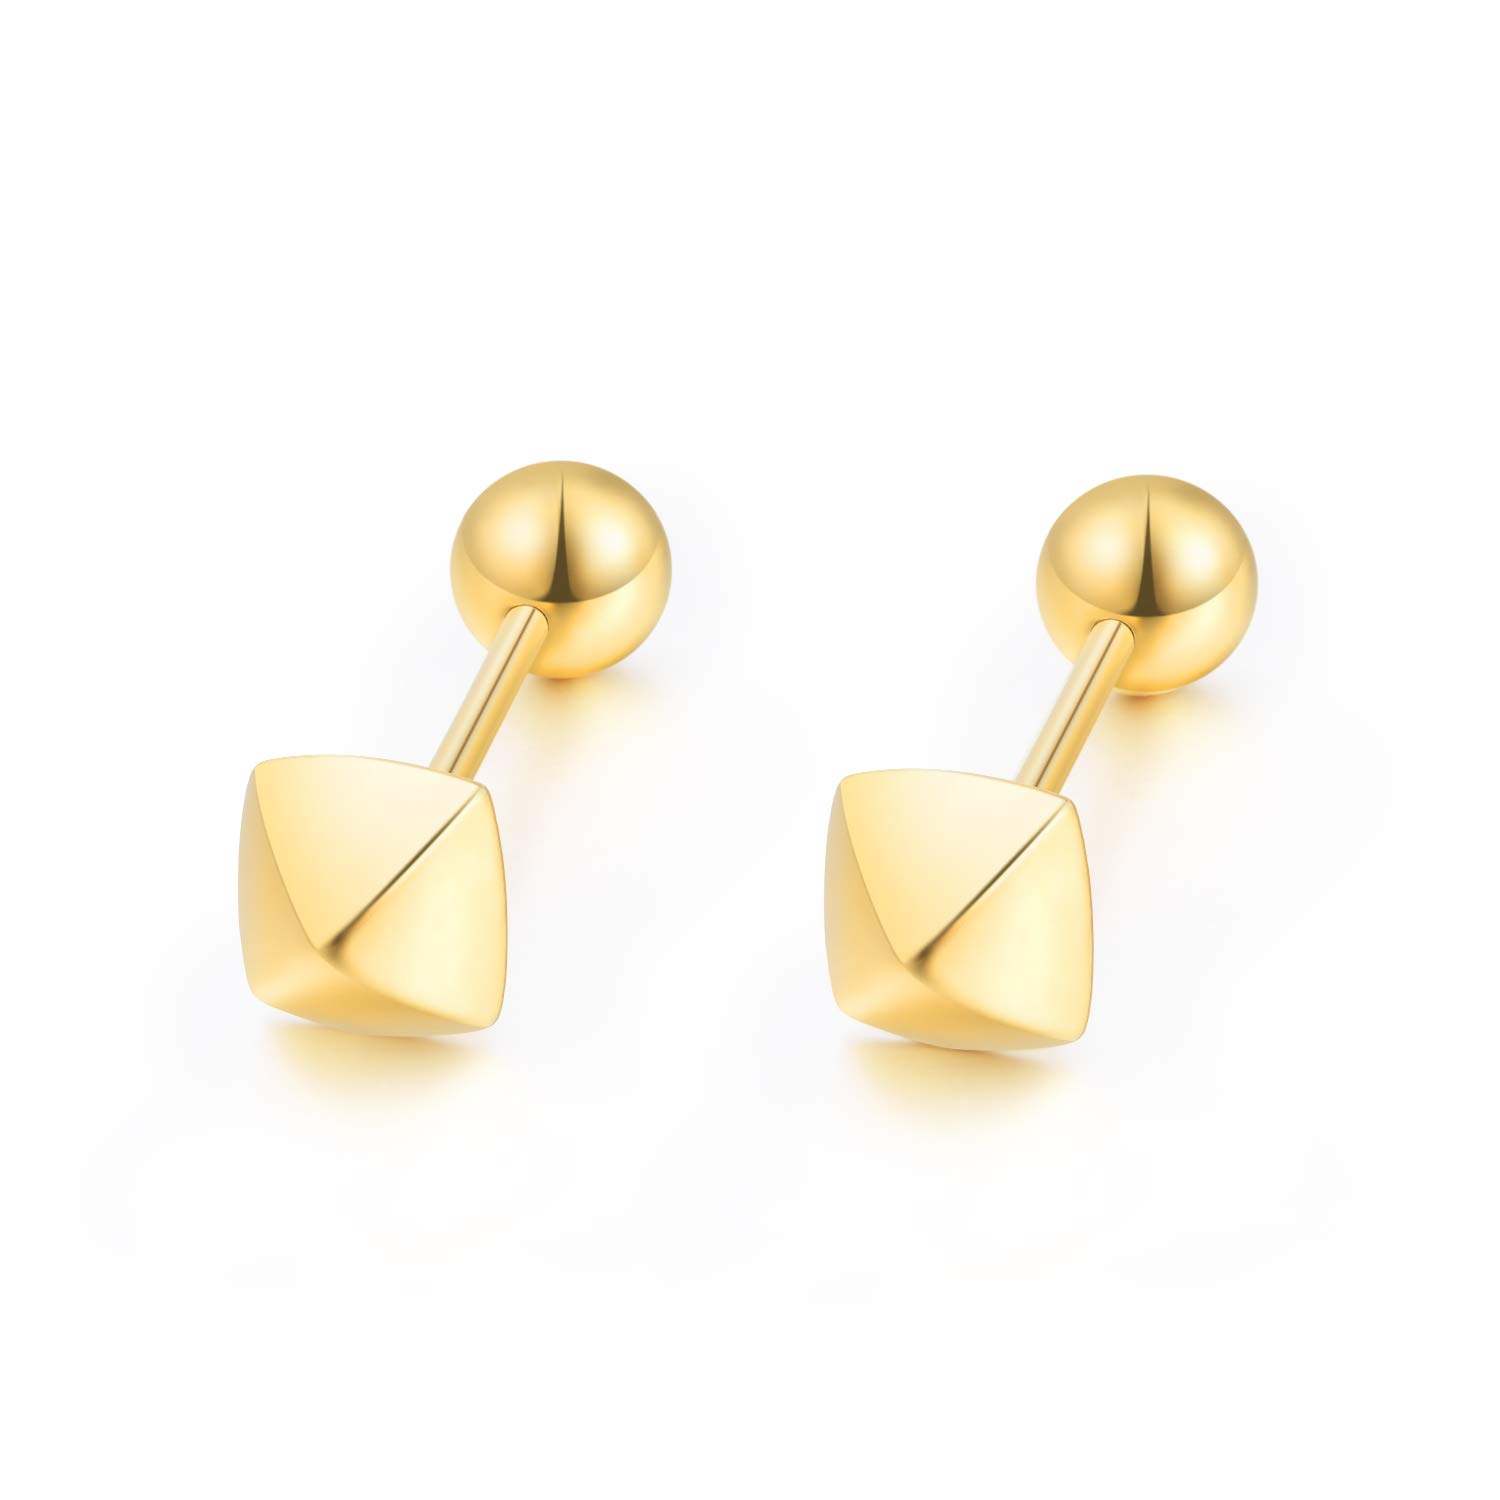 4262e9061 Amazon.com: 18k Yellow Gold Earrings for Girls Screw Back, Gold Square  Earrings, Solid Gold Ball Studs for Women, 5mm: Jewelry